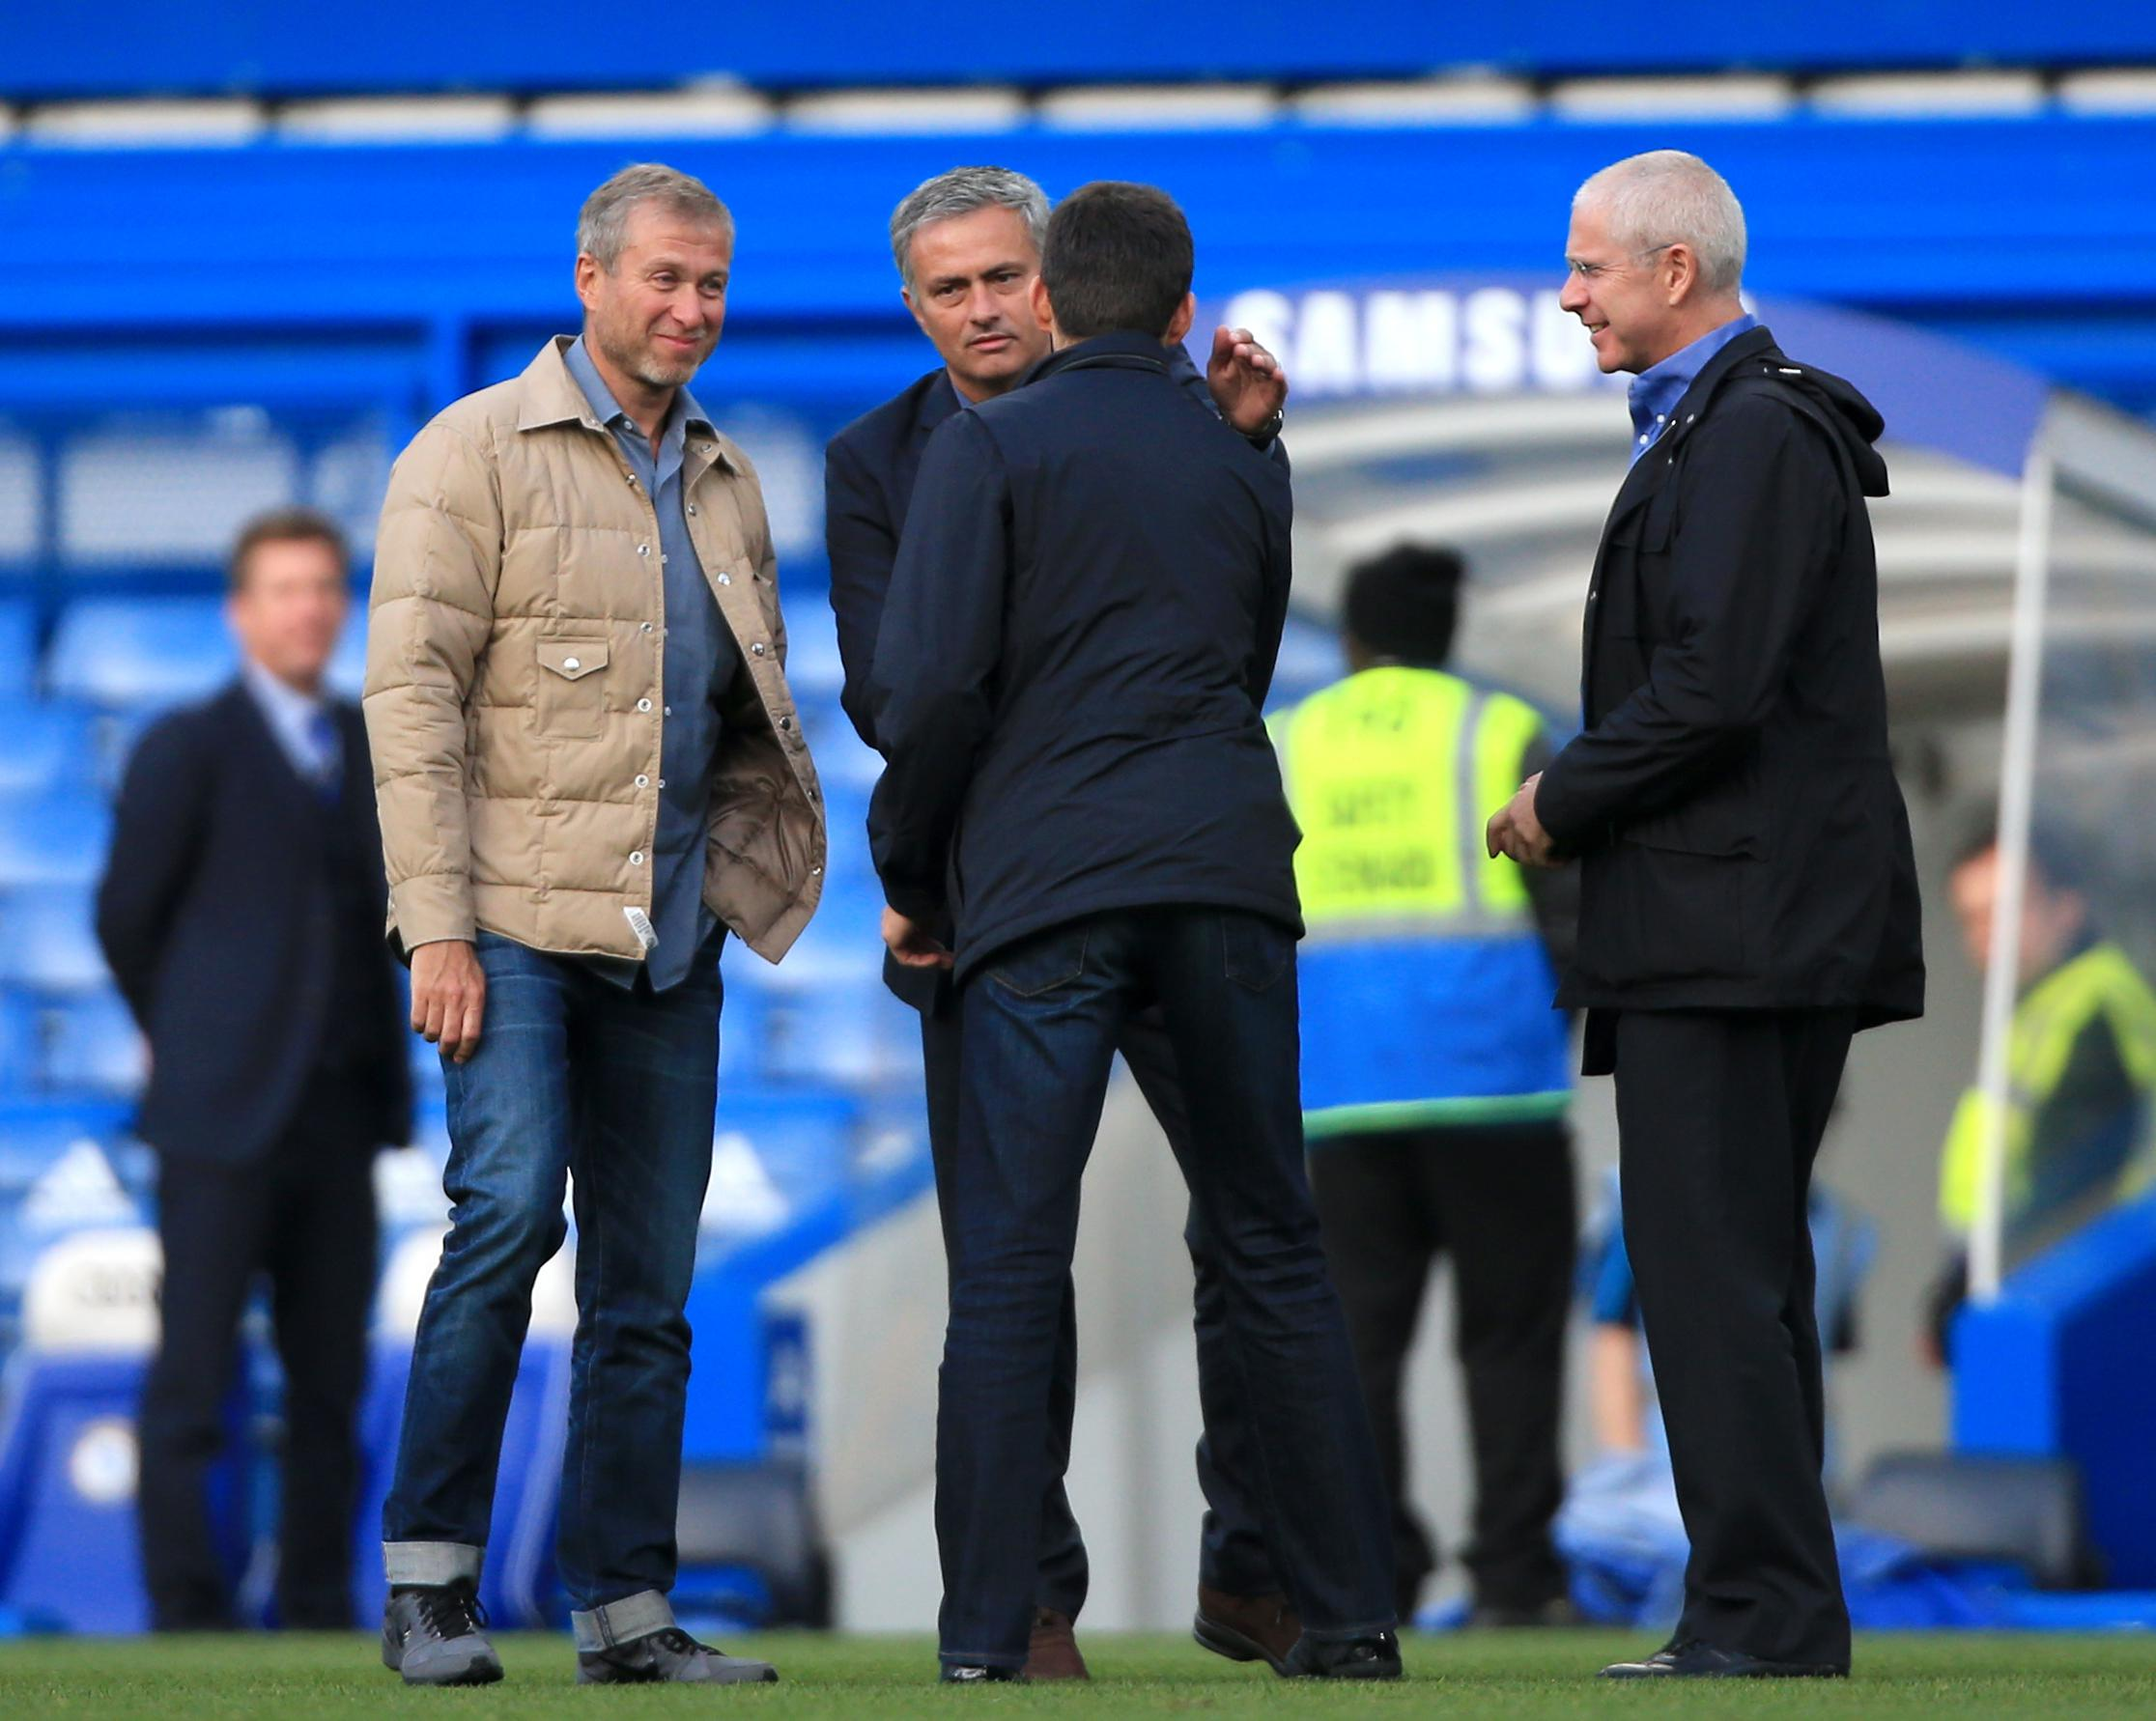 Roman Abramovich and Jose Mourinho meet in happier times at Stamford Bridge